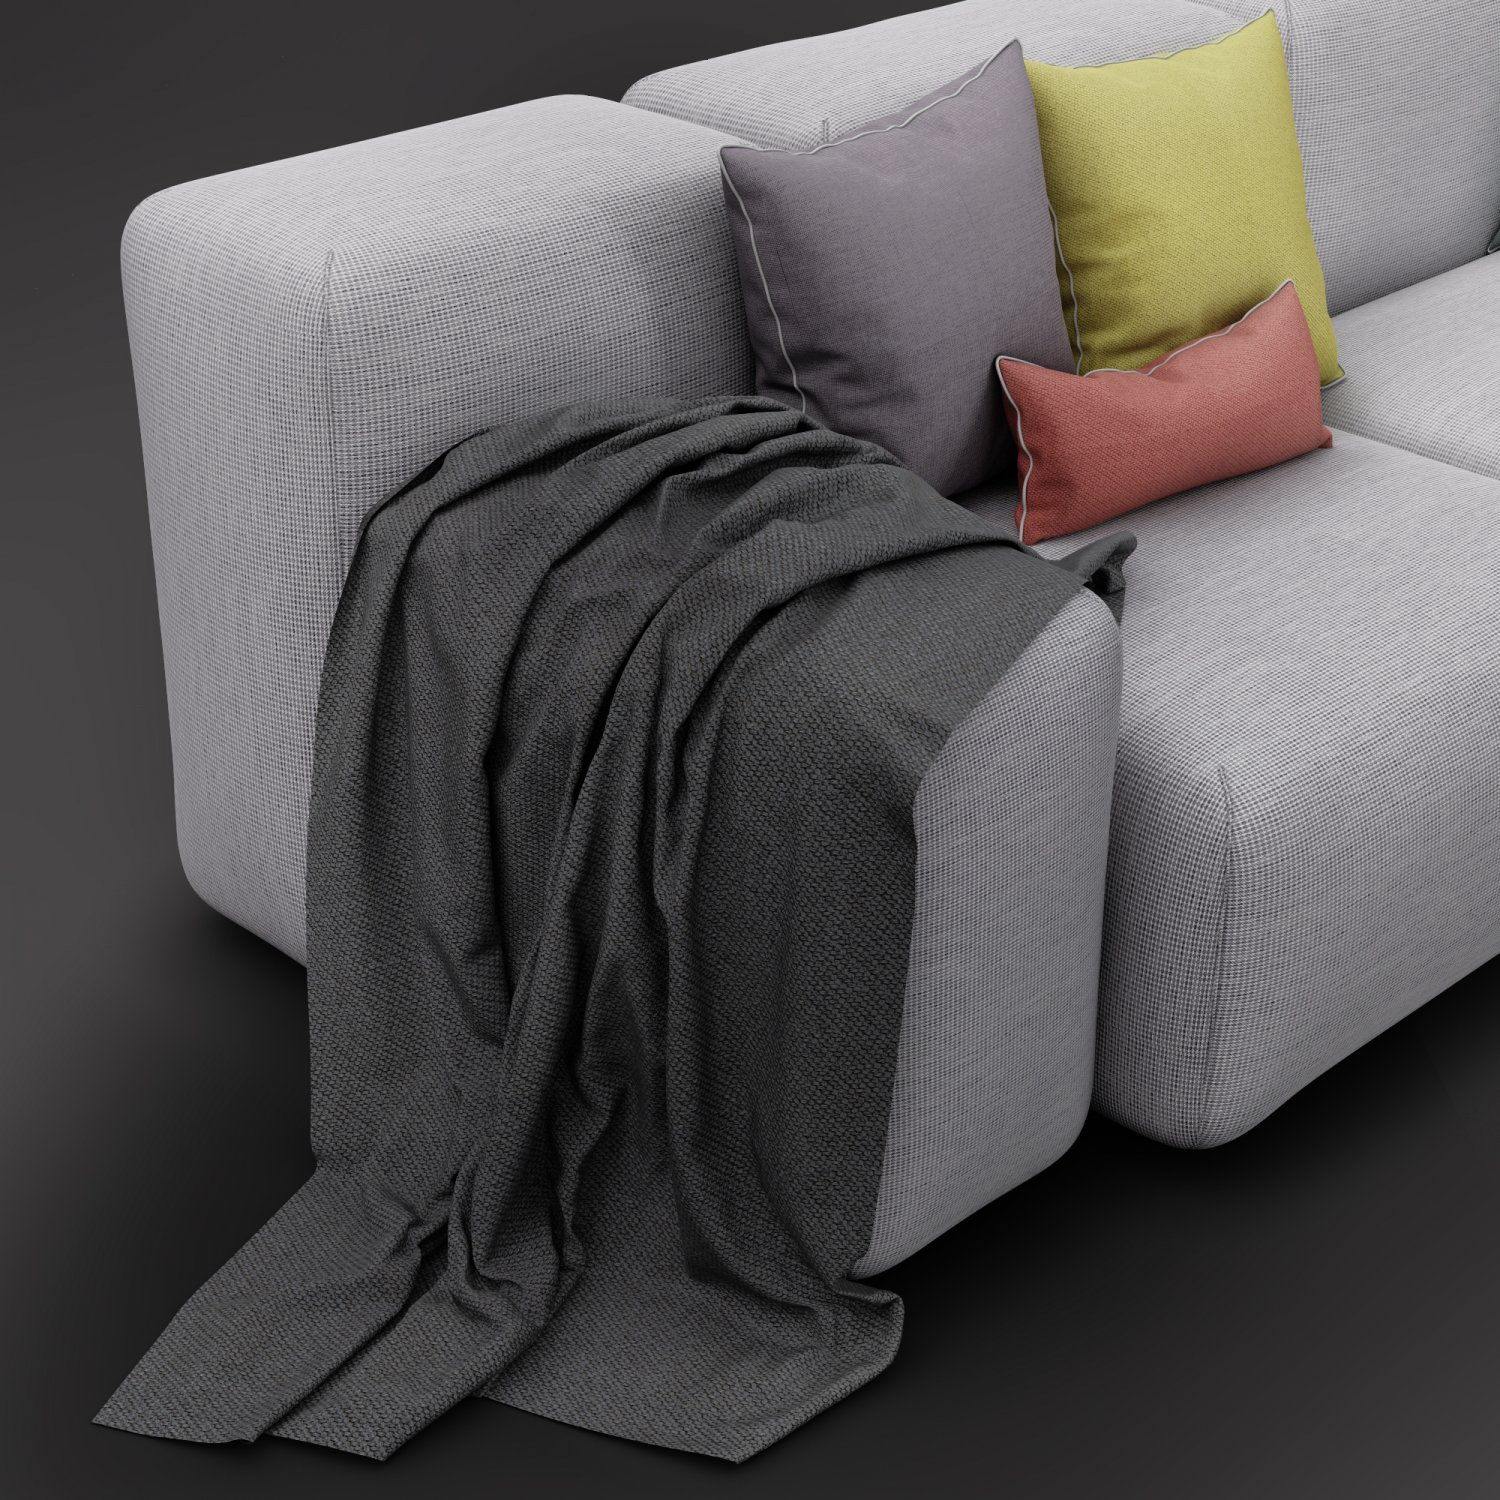 SOFT BLOCKS Sofa. Remove Bookmark Bookmark This Item